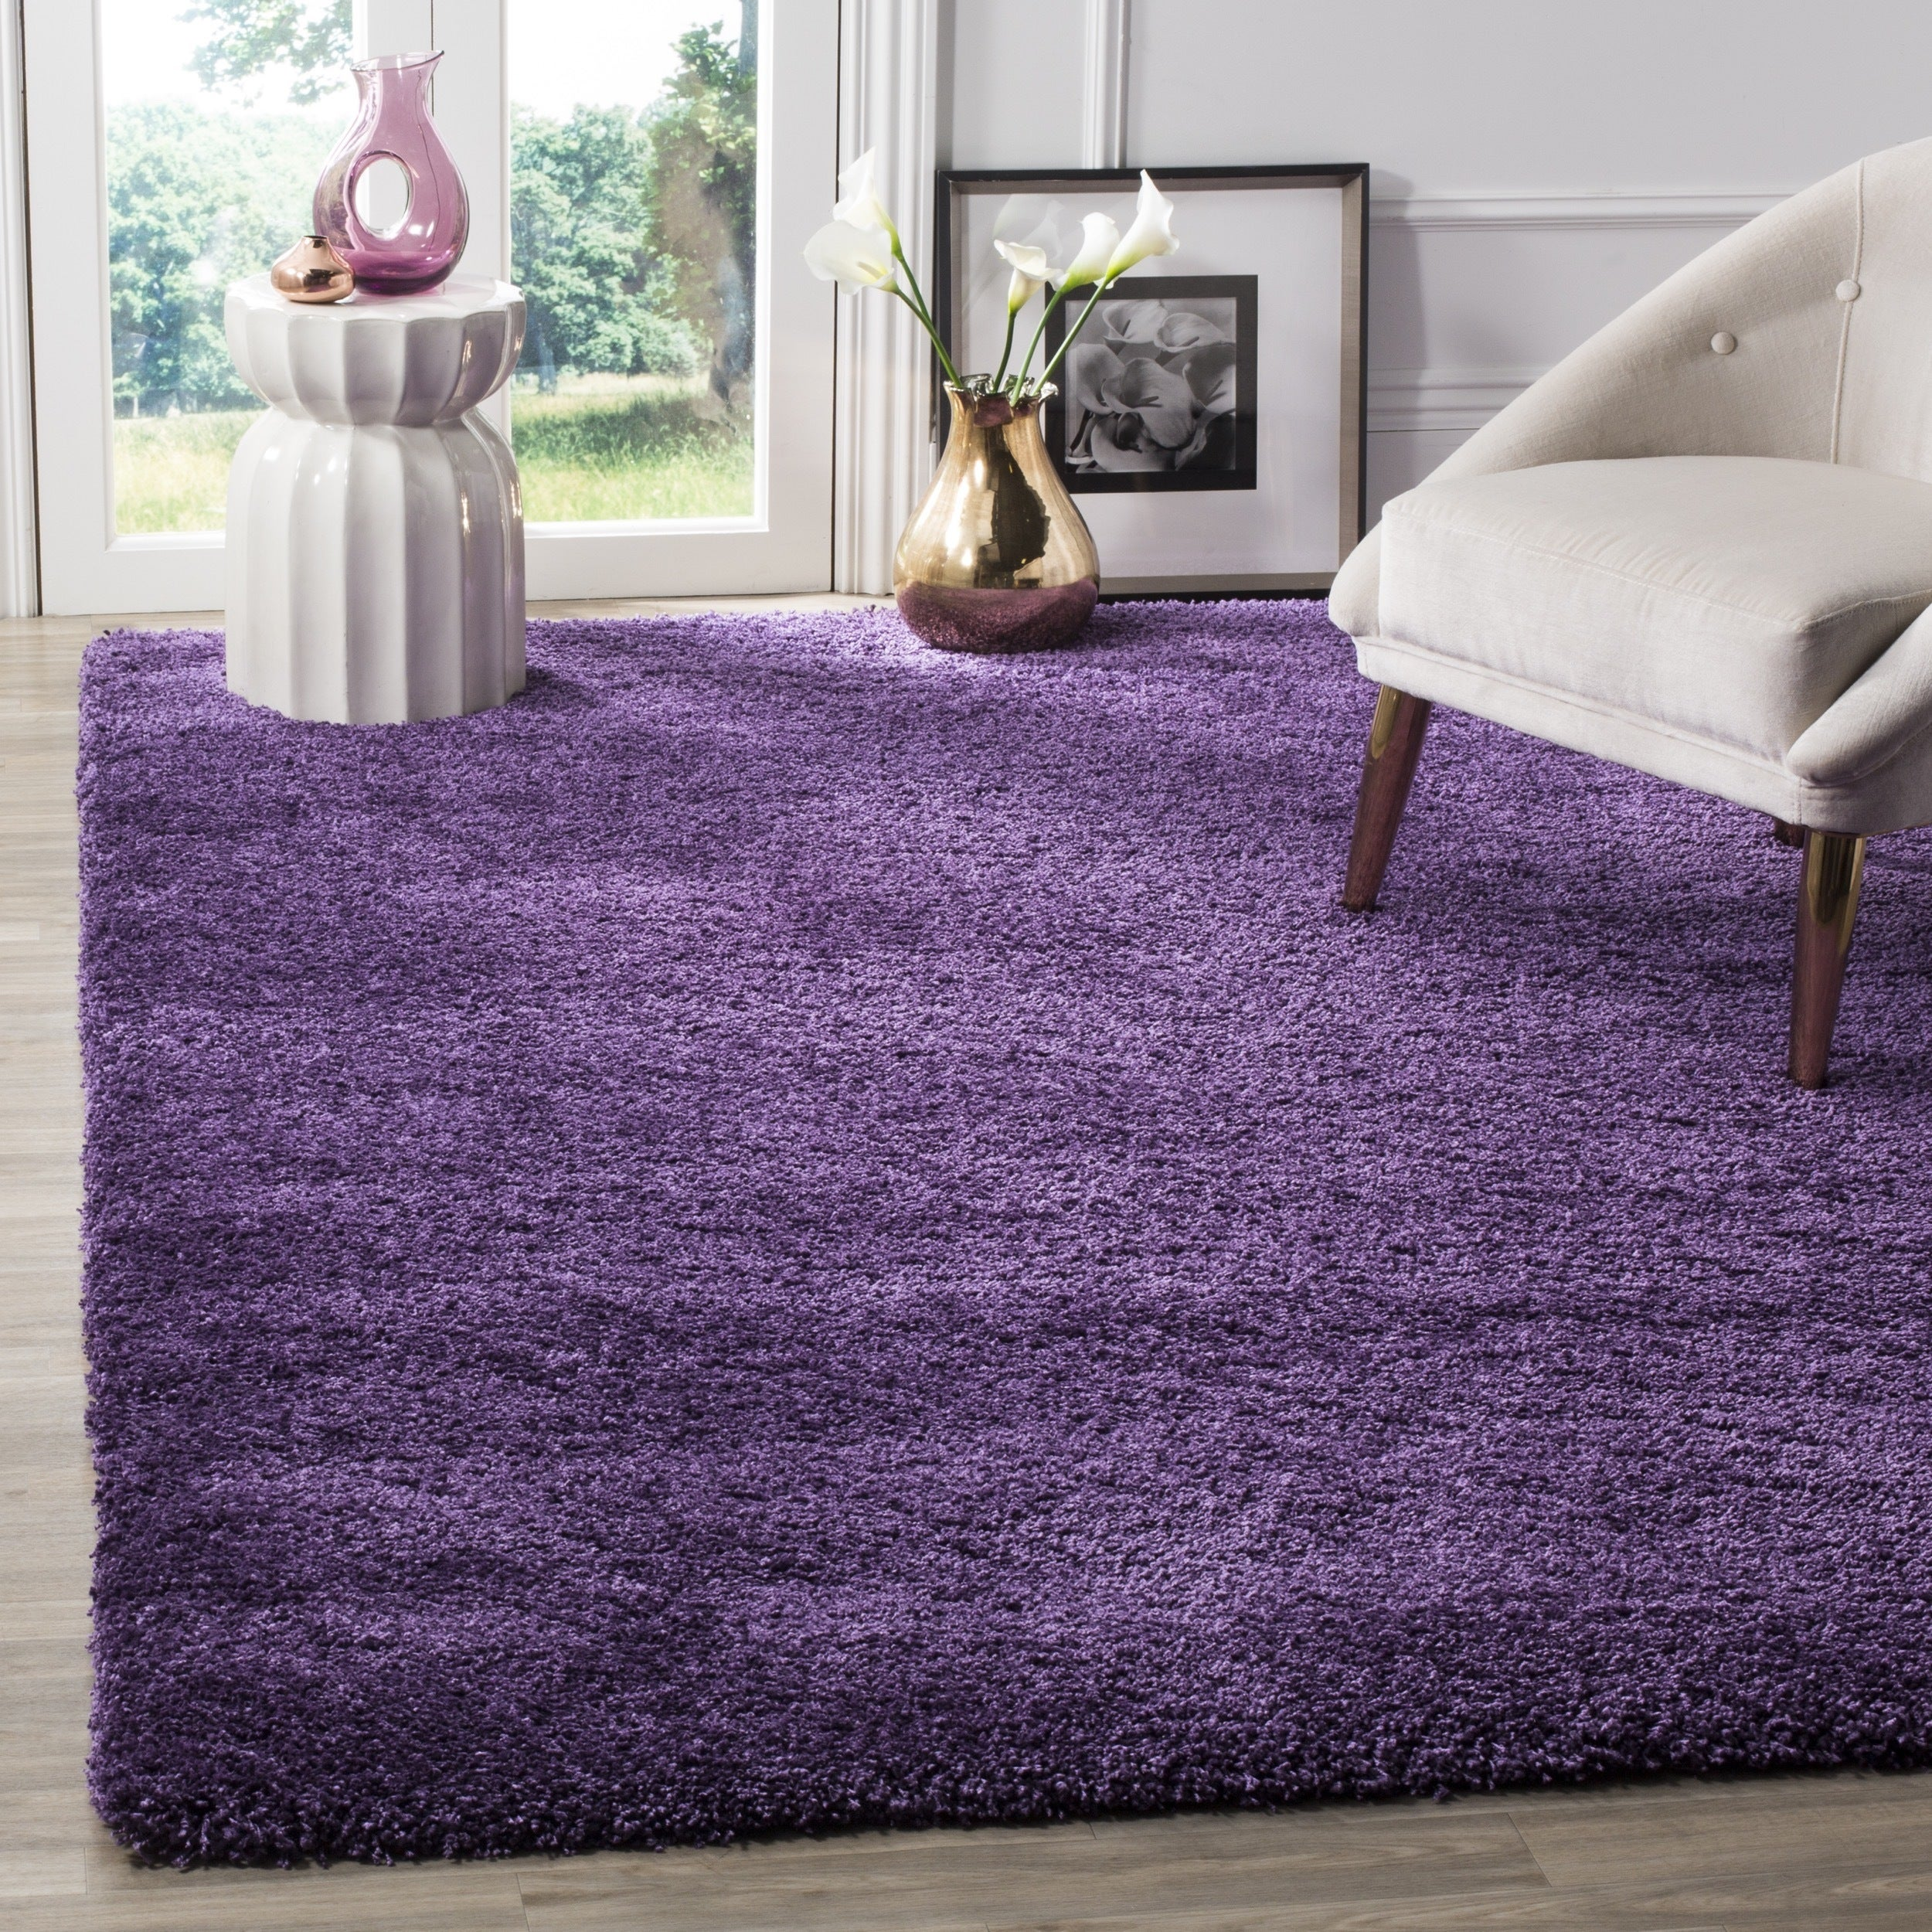 area black abstract white kitchen dining rug rugs amazon carpet dp purple com